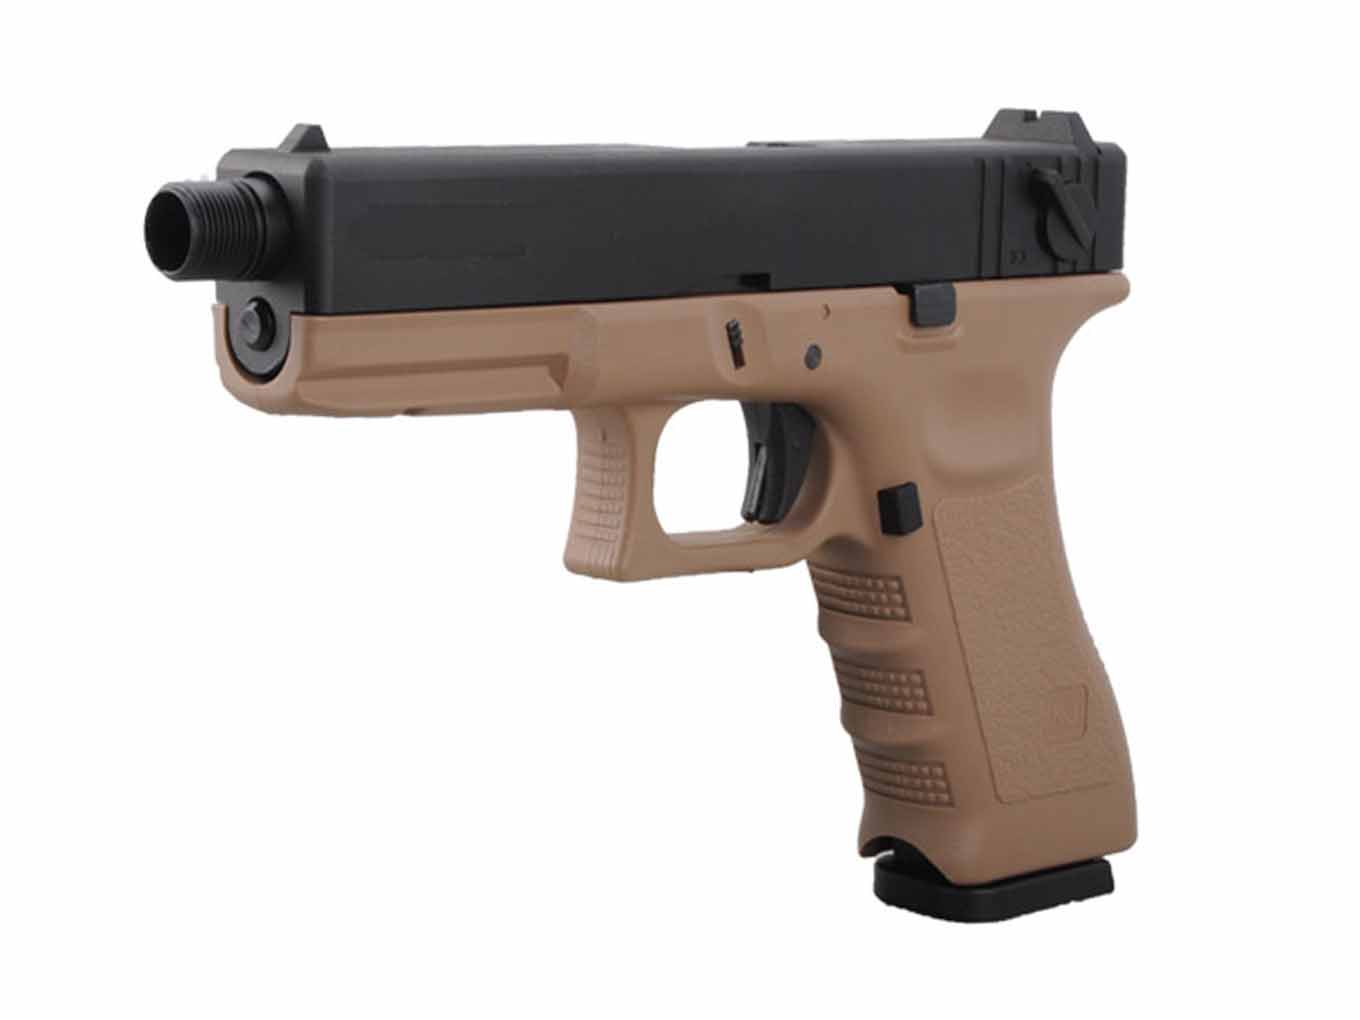 KJW KP-18 Metal Slide Tactical CO2 GBB Pistol Tan